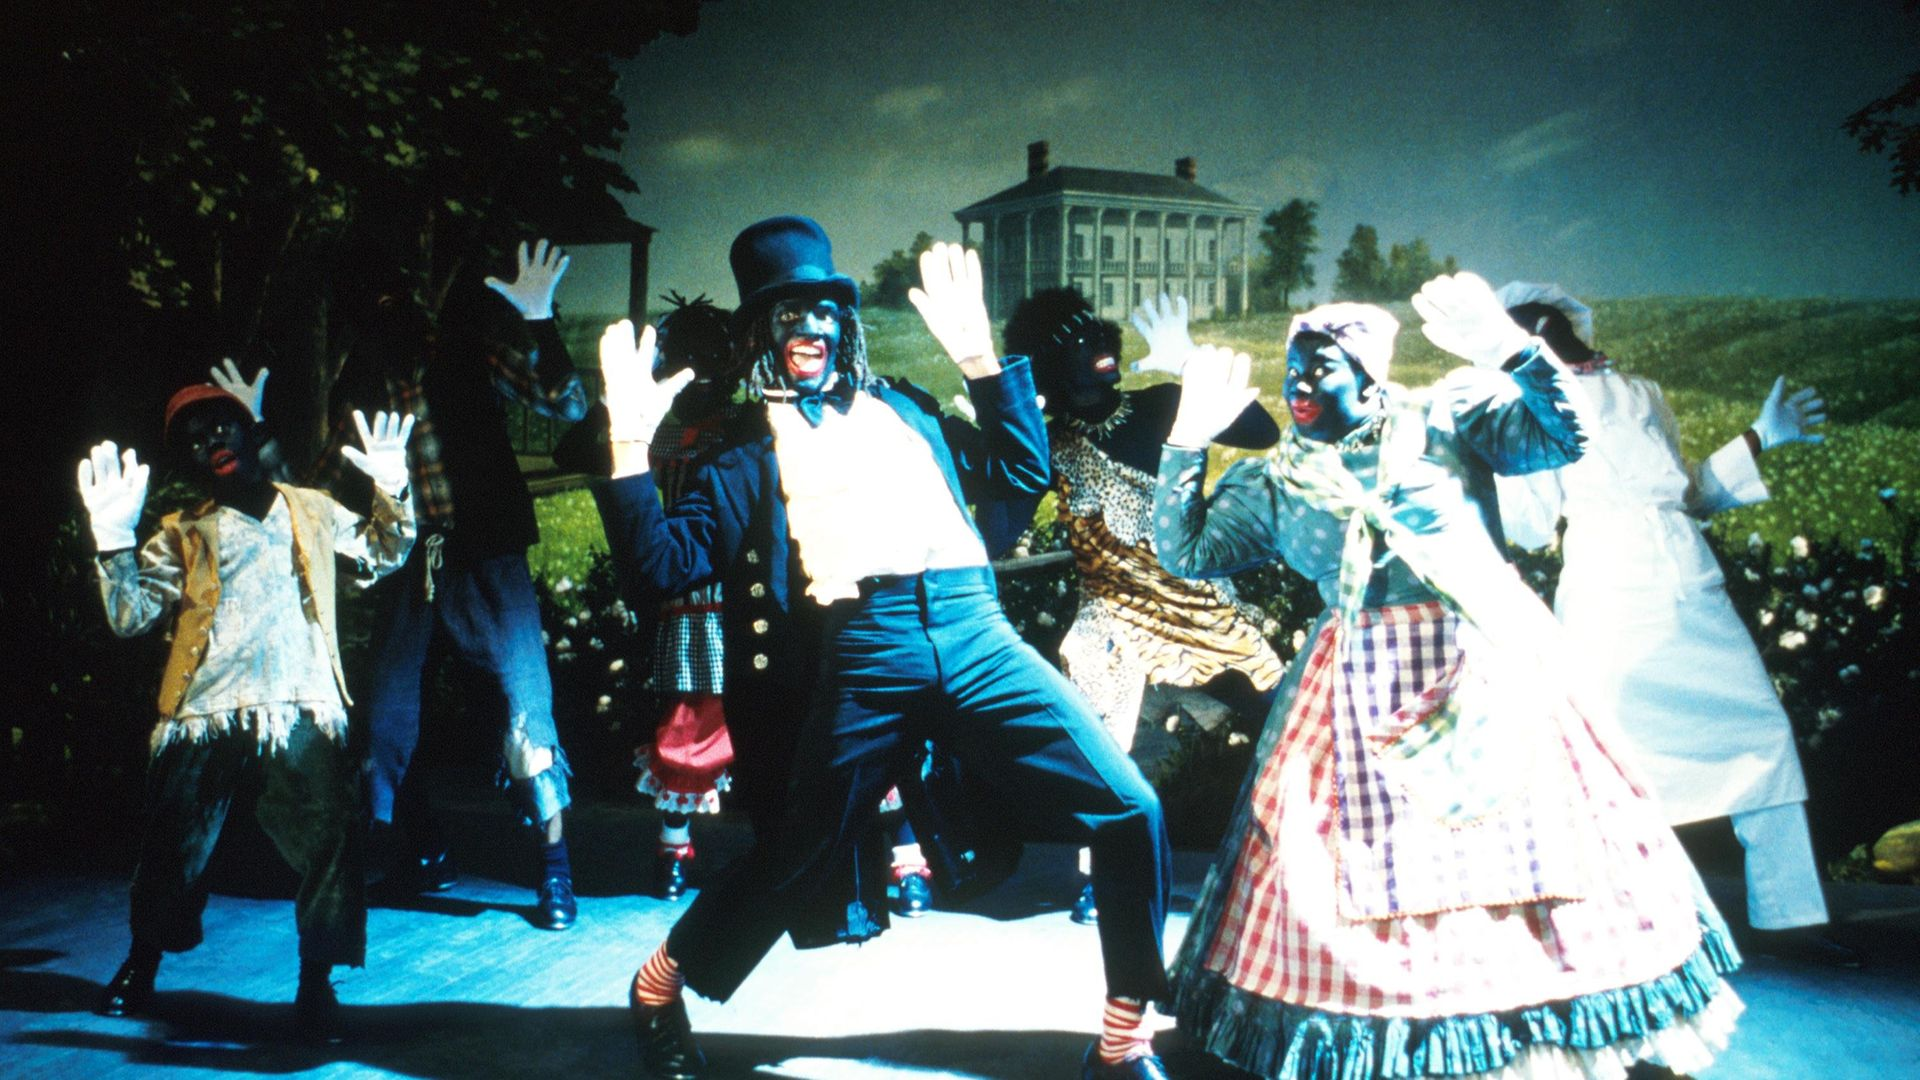 """Savion Glover as Mantan, center, performs in a scene from New Line Cinema's satire, """"Bamboozled,"""" directed by Spike Lee. - Credit: Getty Images"""